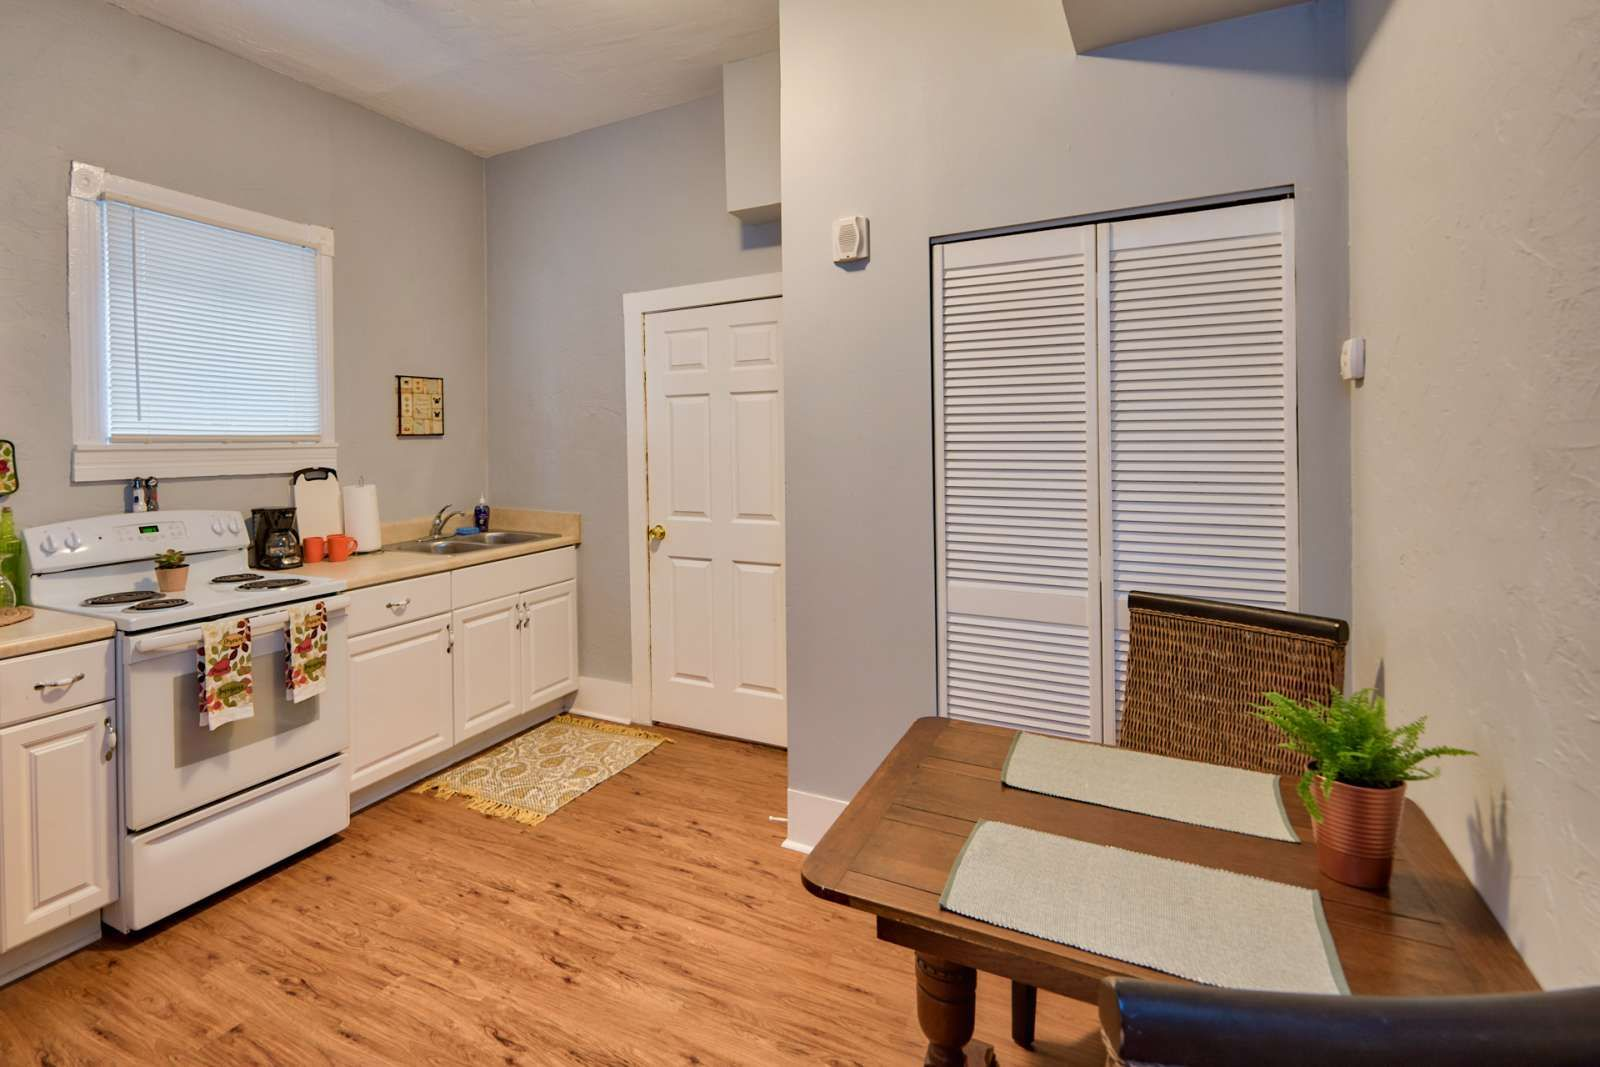 Furniture stores in st augustine fl  St Augustine Vacation Rental  Floridiano Del Sal II BRBA P